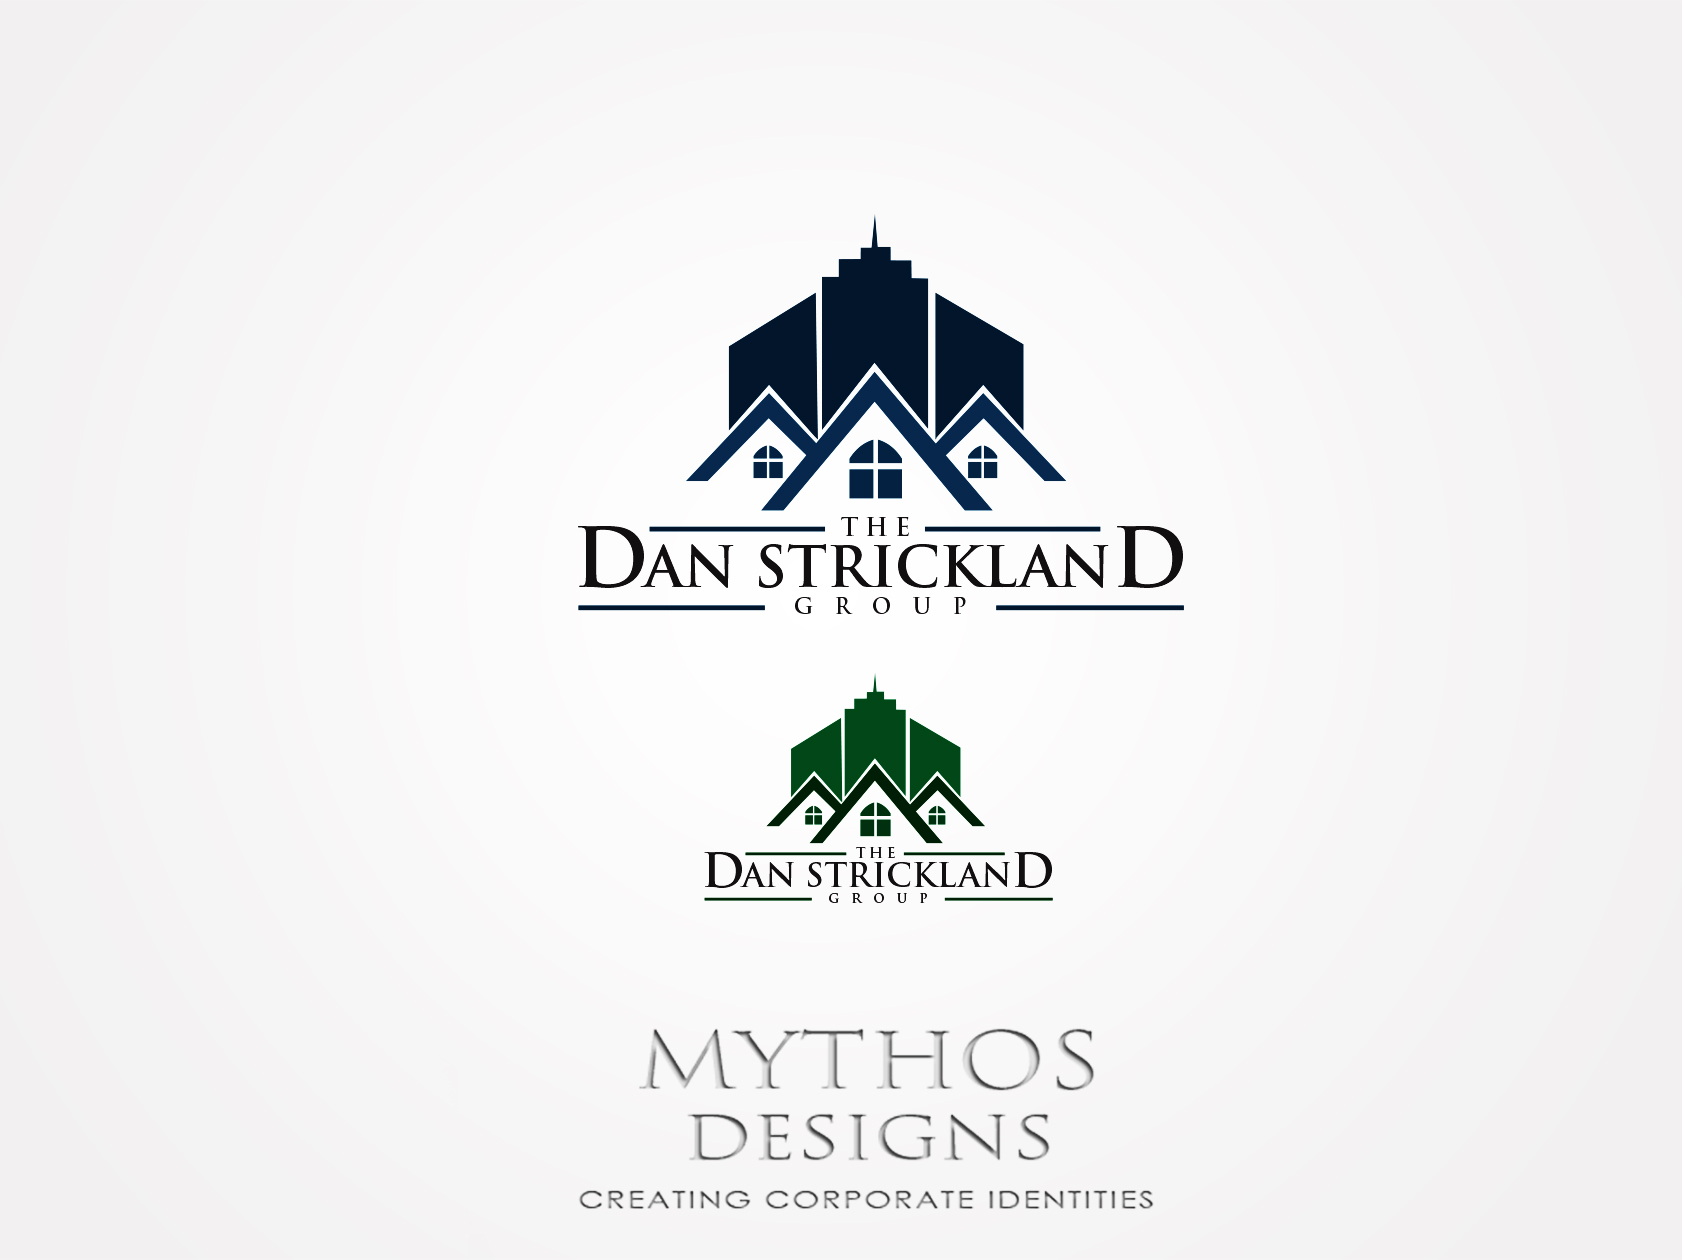 Logo Design by Mythos Designs - Entry No. 289 in the Logo Design Contest Creative Logo Design for The Dan Strickland Group.